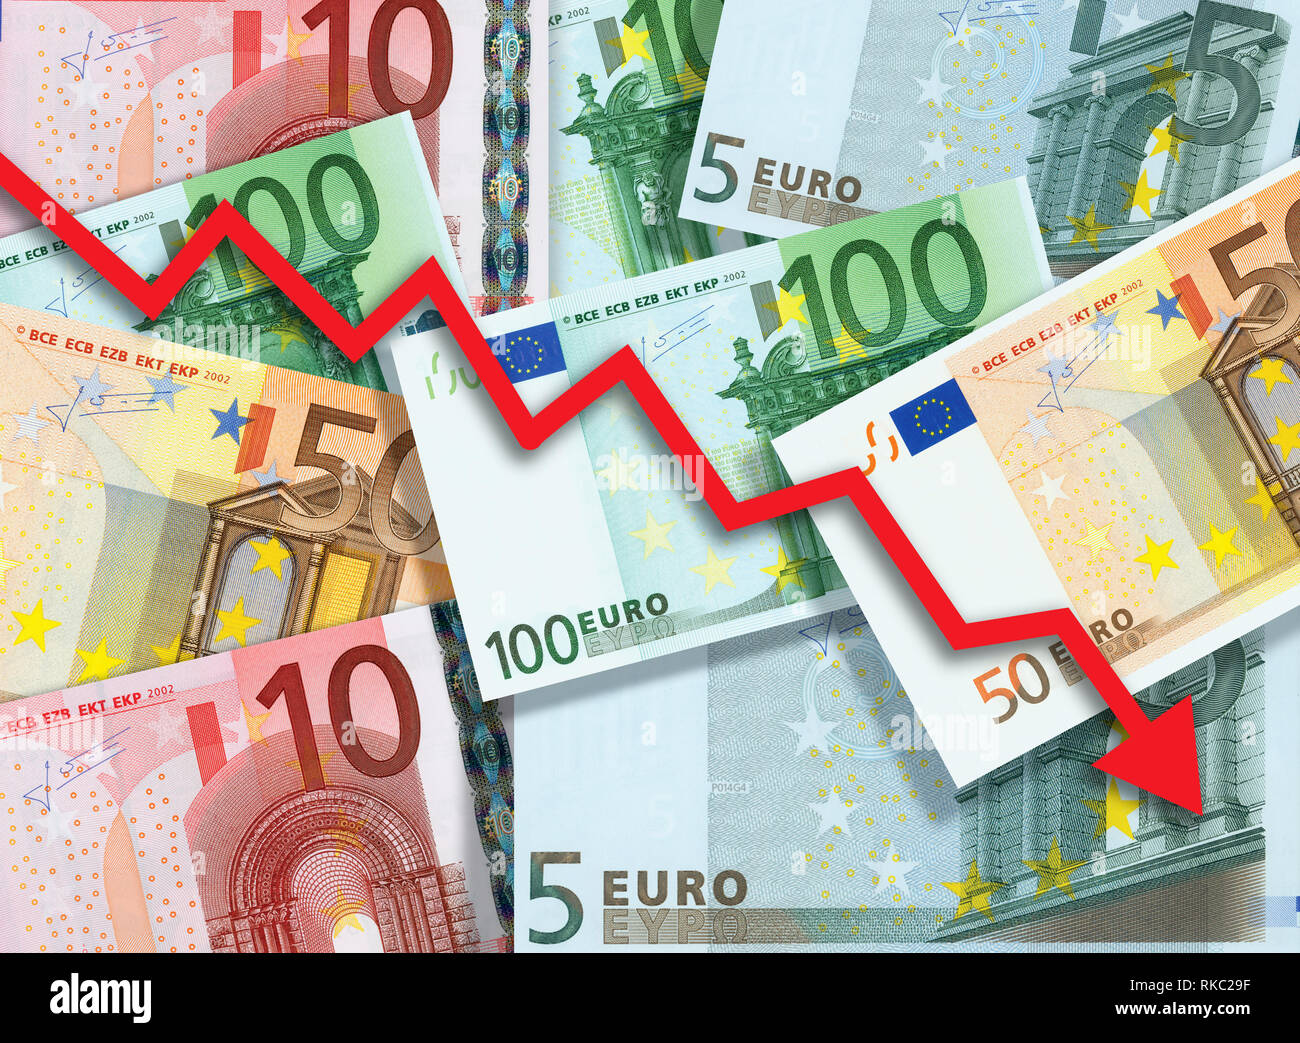 Euro money fall concept, arrow chart pointing down against background made of Euro bills - Stock Image